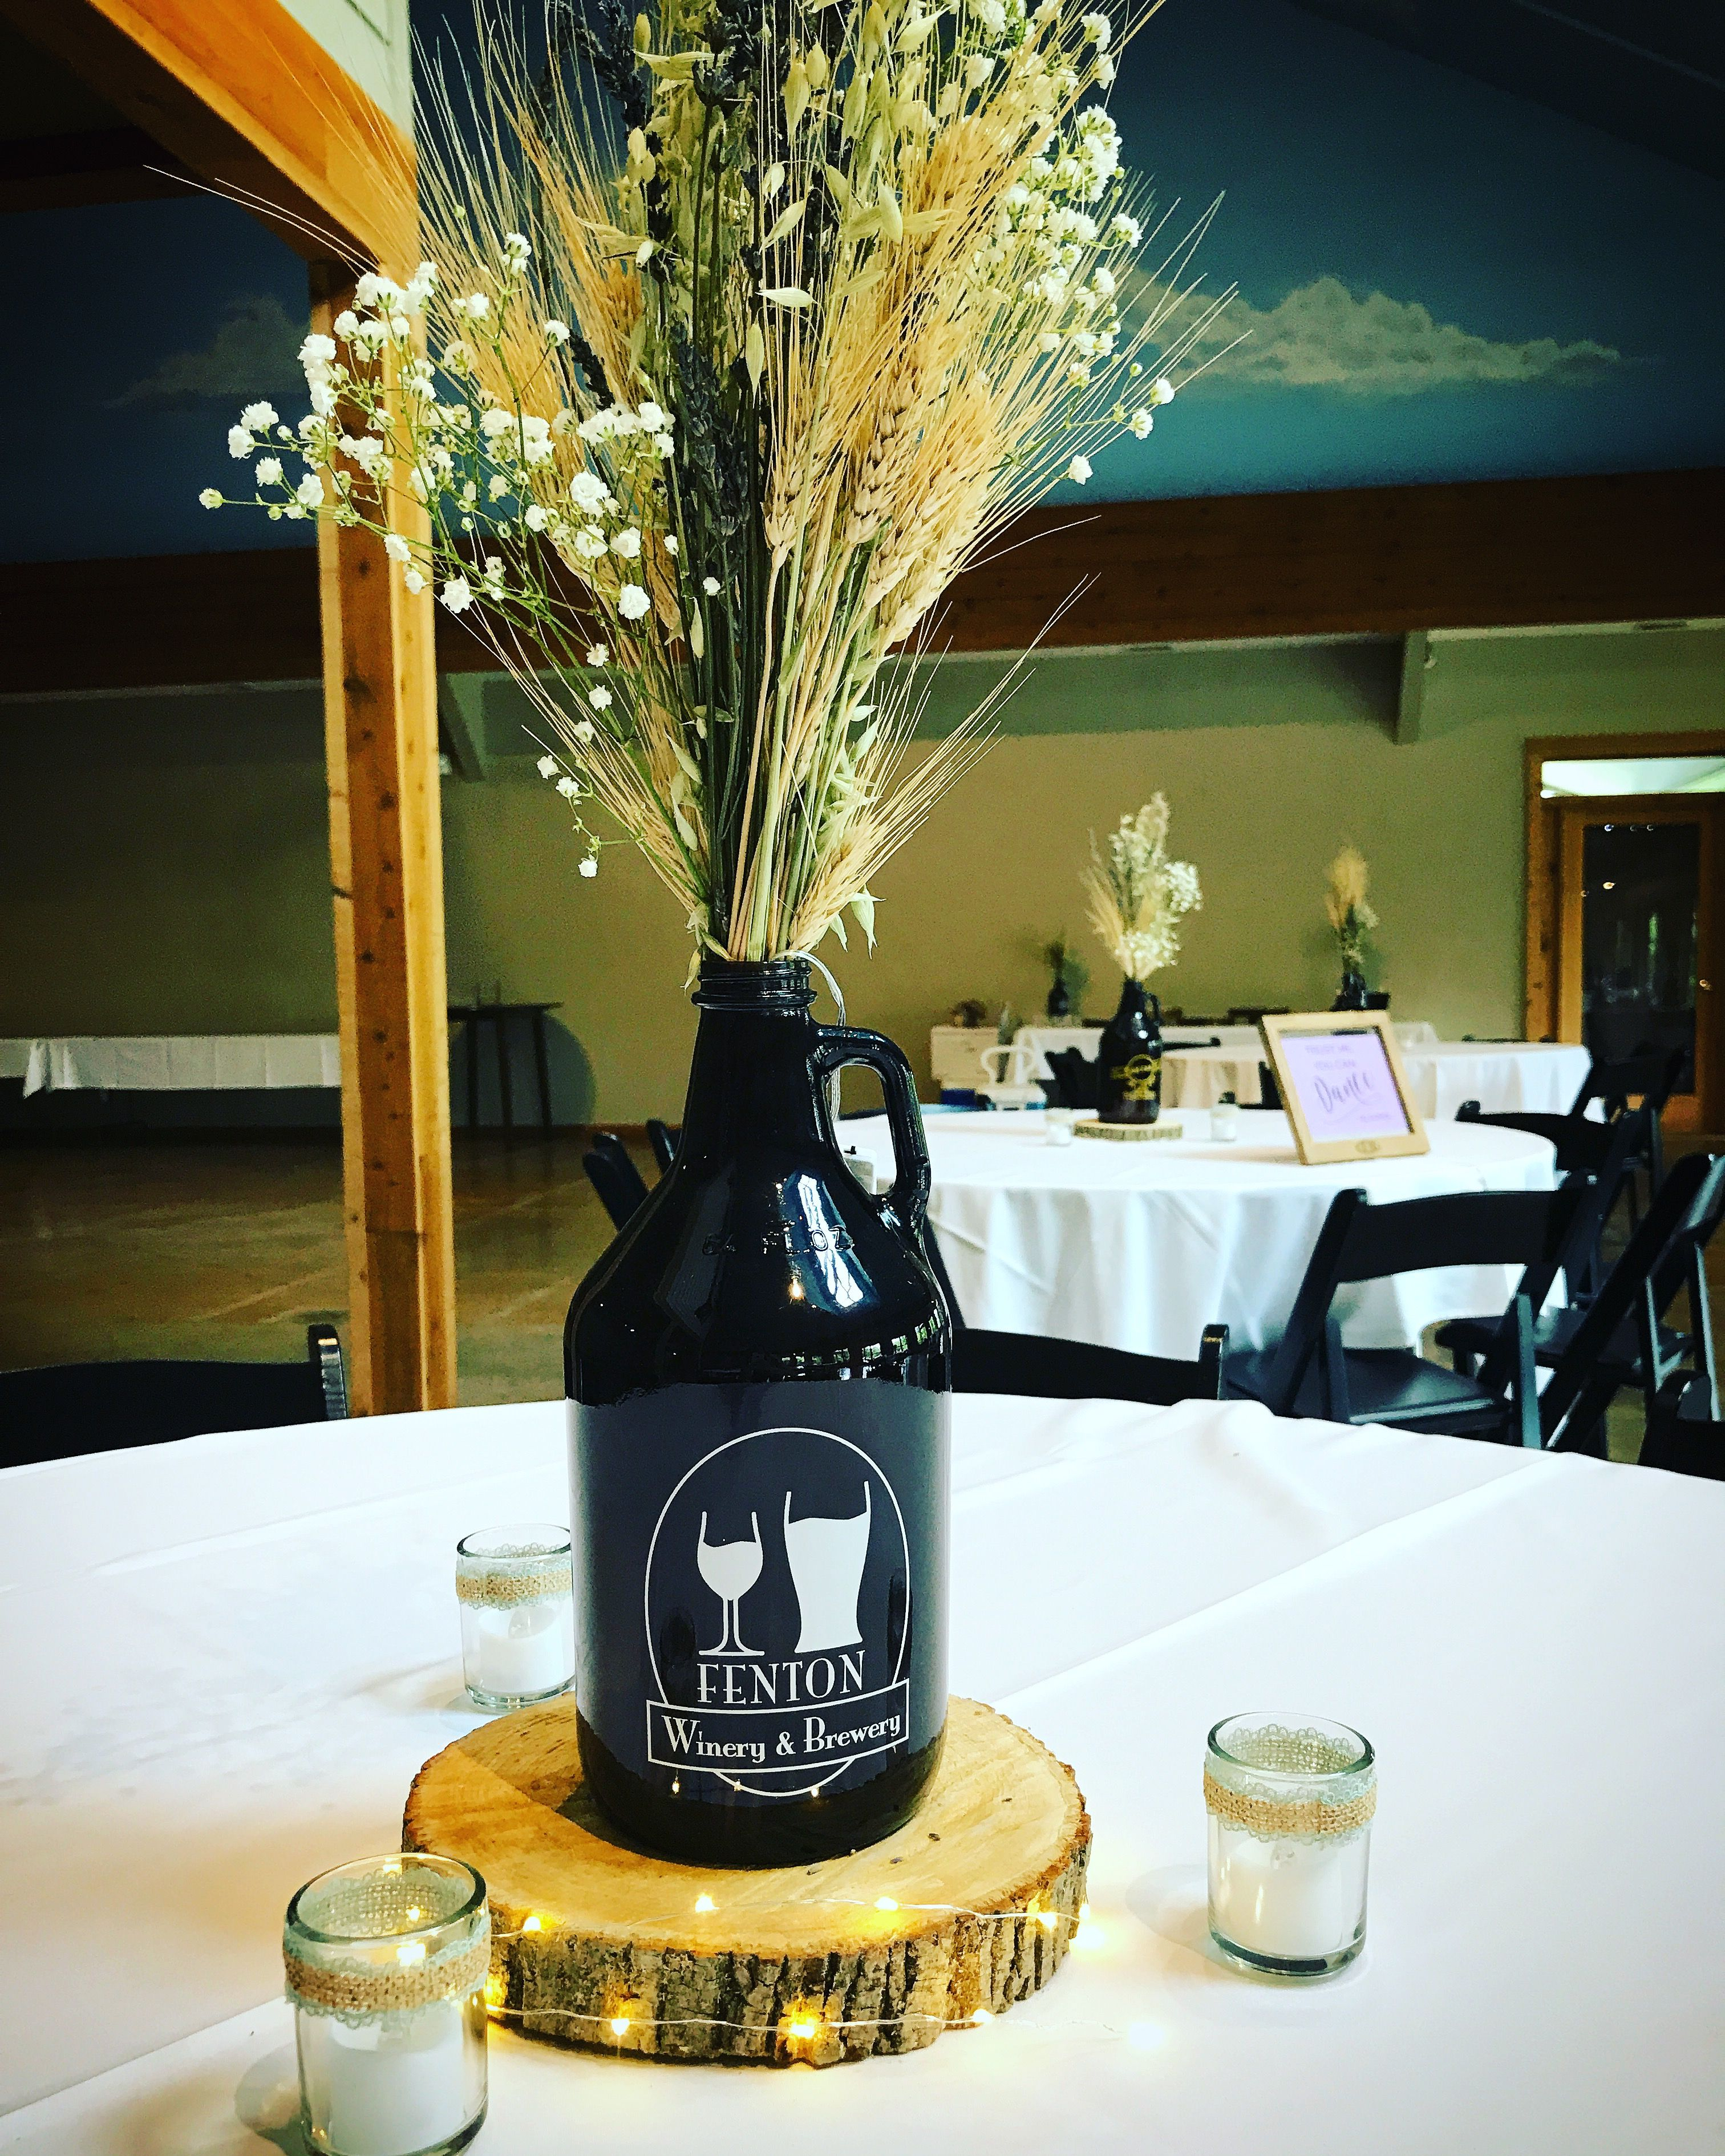 Growler with harvested grains for a centerpiece. Adds a